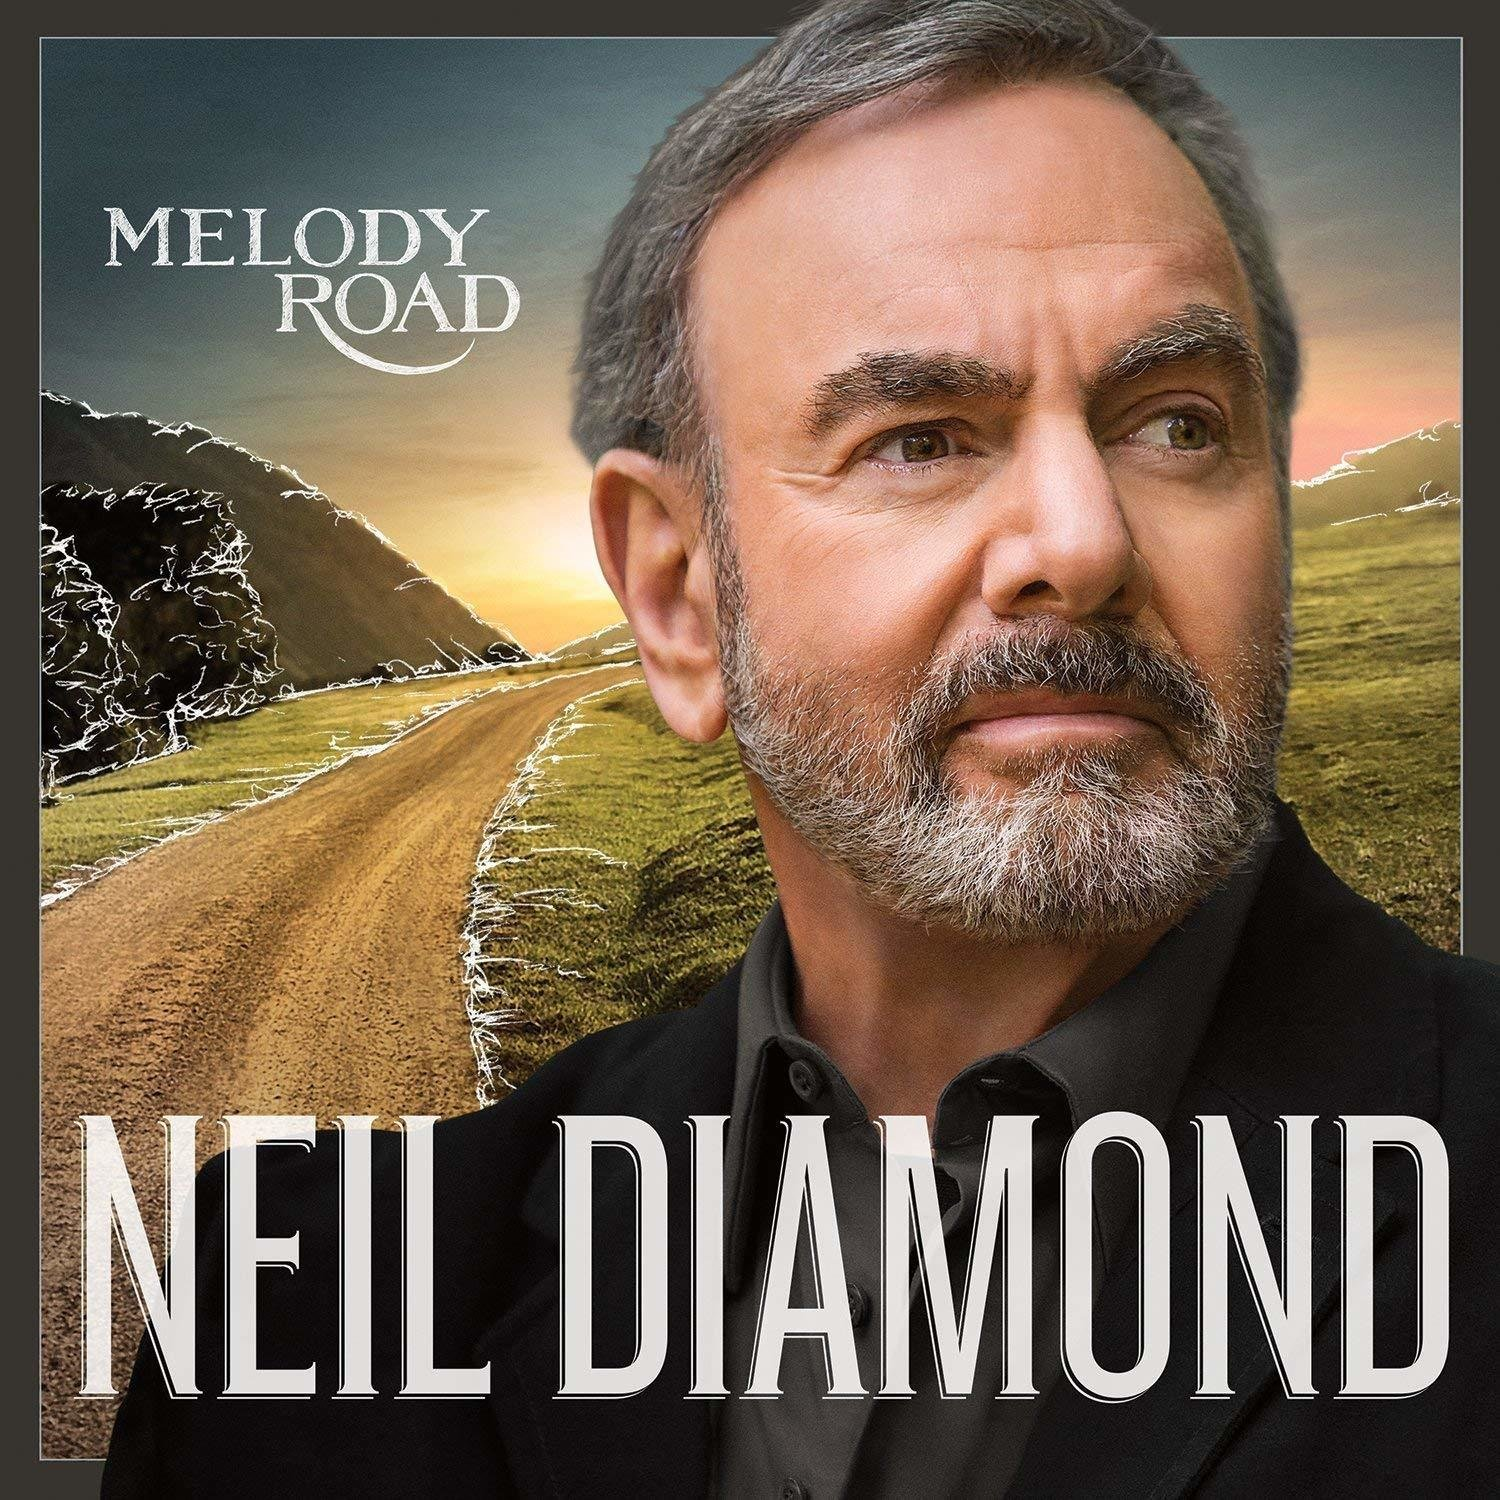 Melody Road (Limited Deluxe Edition)